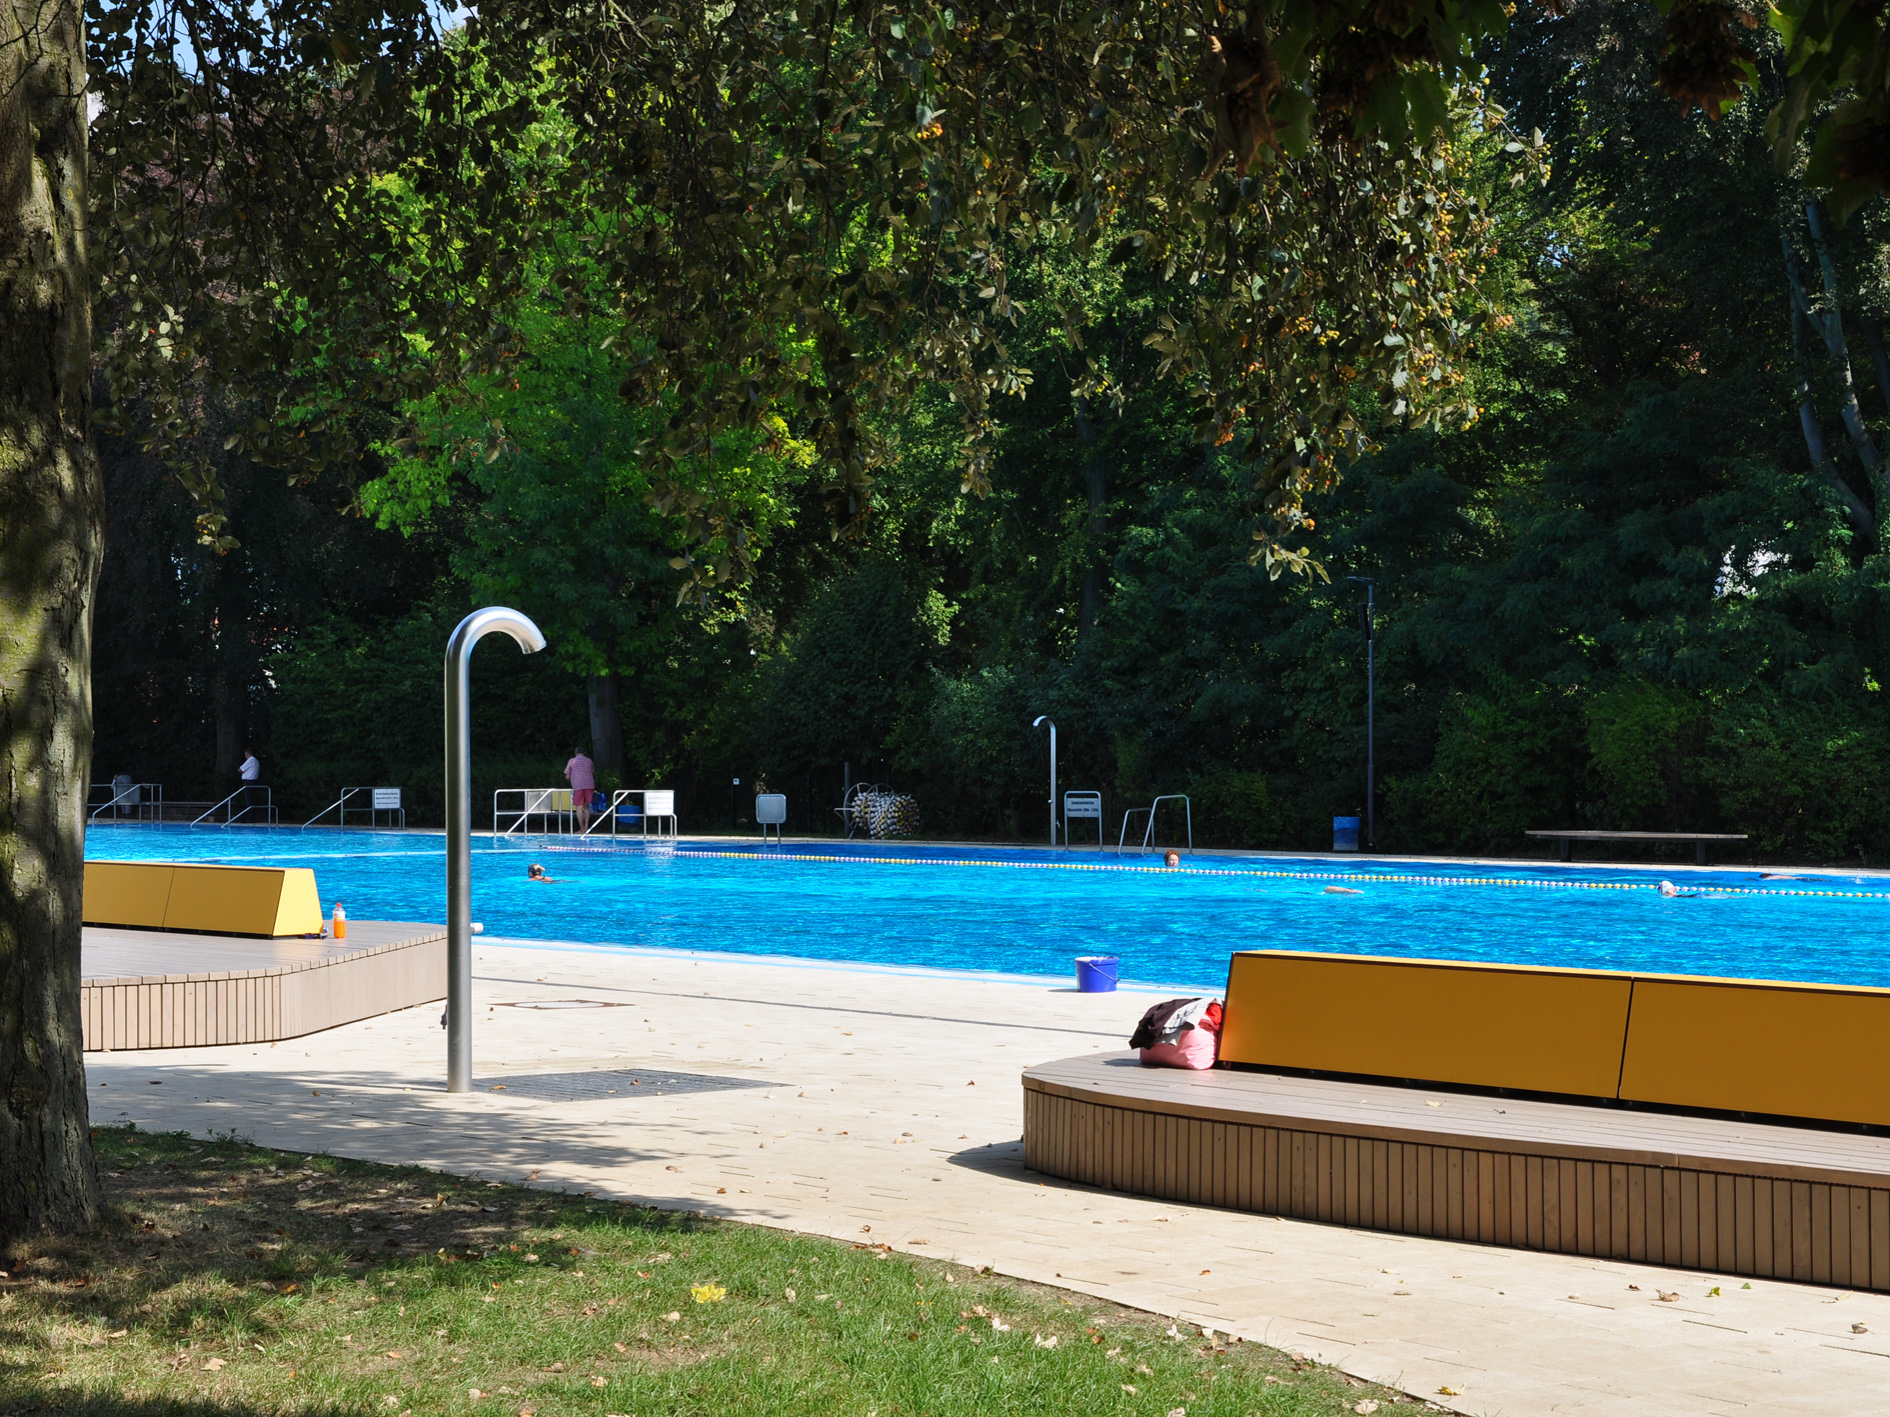 1511_Freibad_Bad_Salzdetfurth_10.jpg